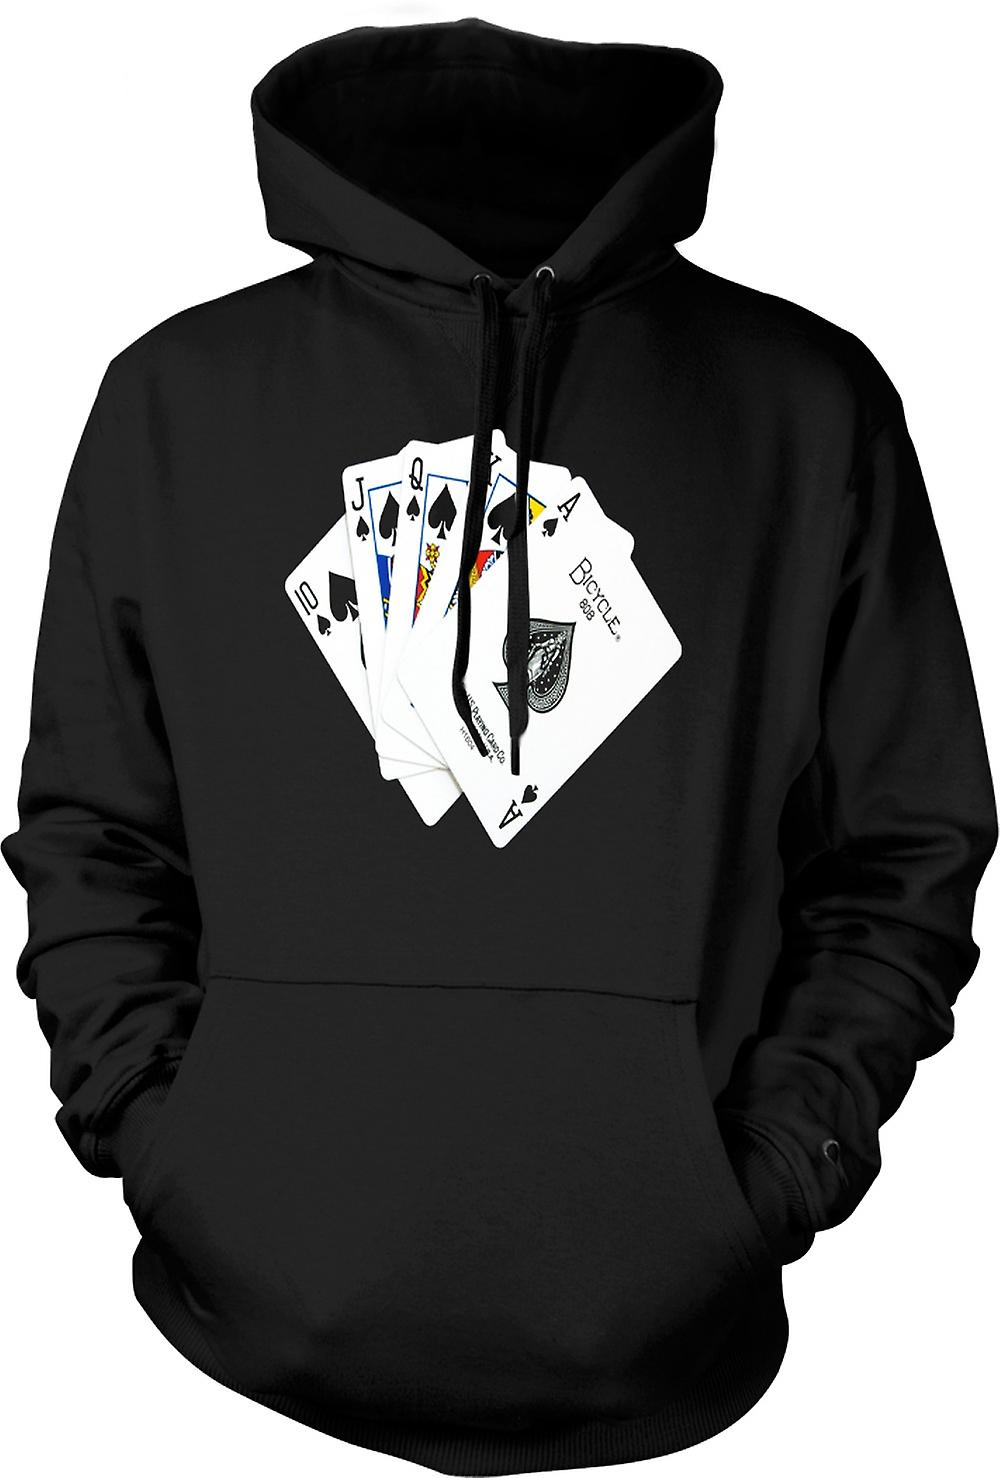 Mens Hoodie - Poker Royal Flush